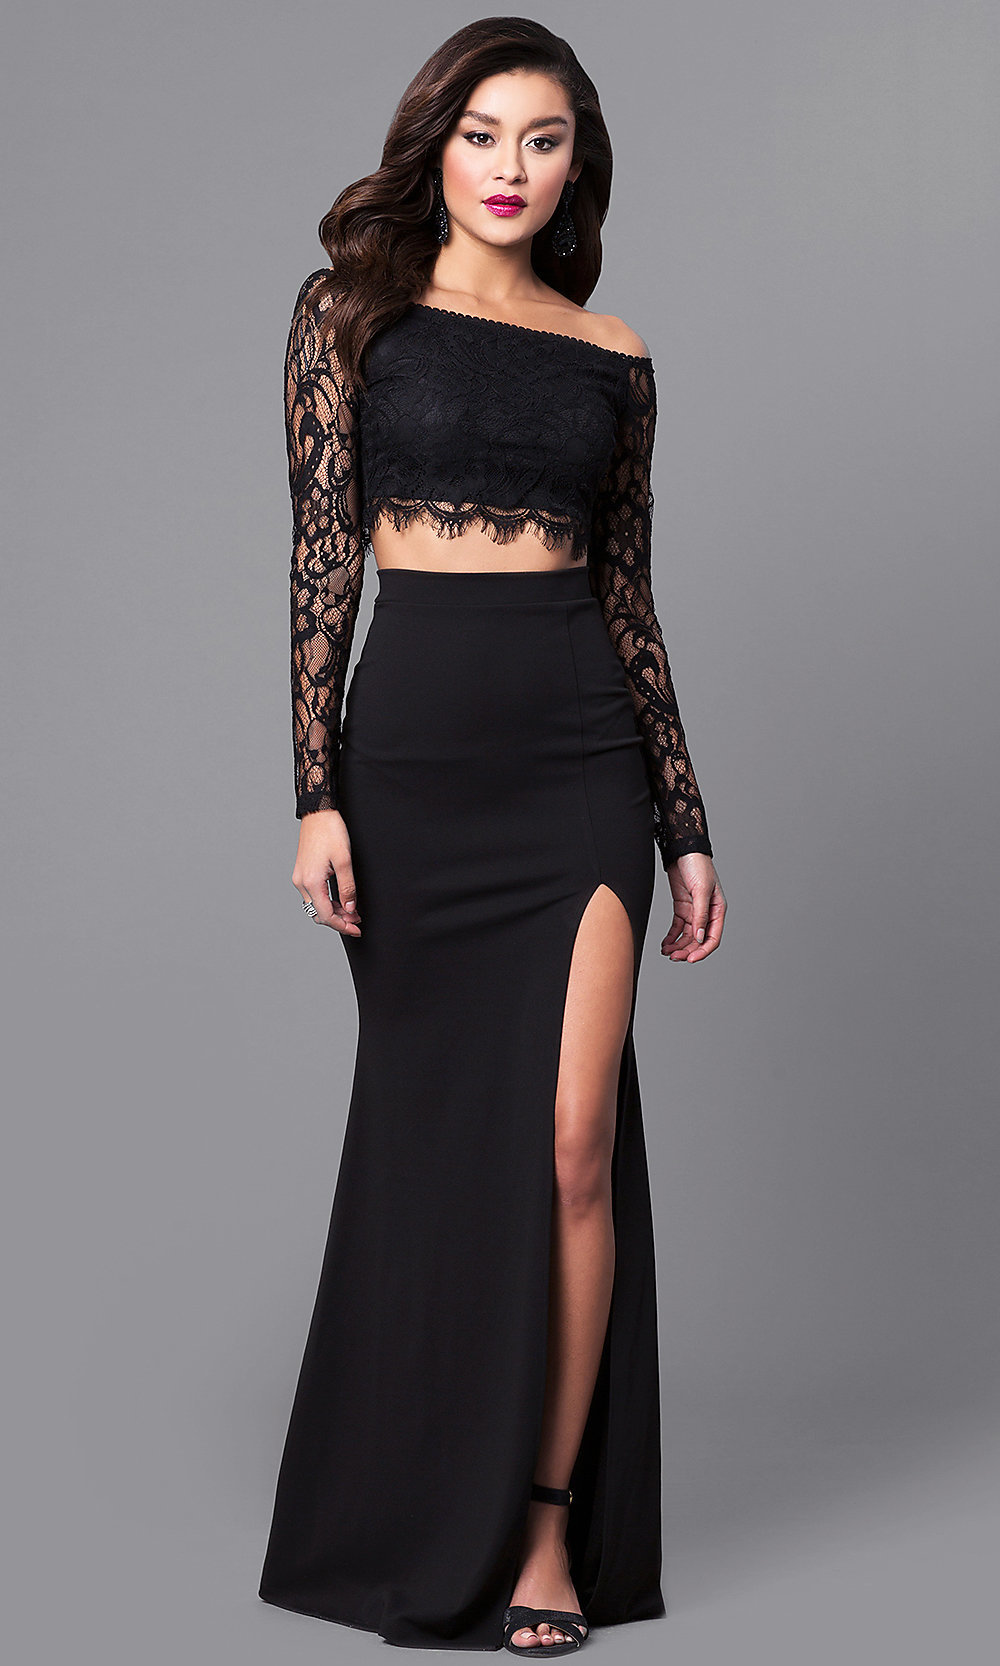 Long Sleeve Two Piece Black Lace Prom Dress Promgirl